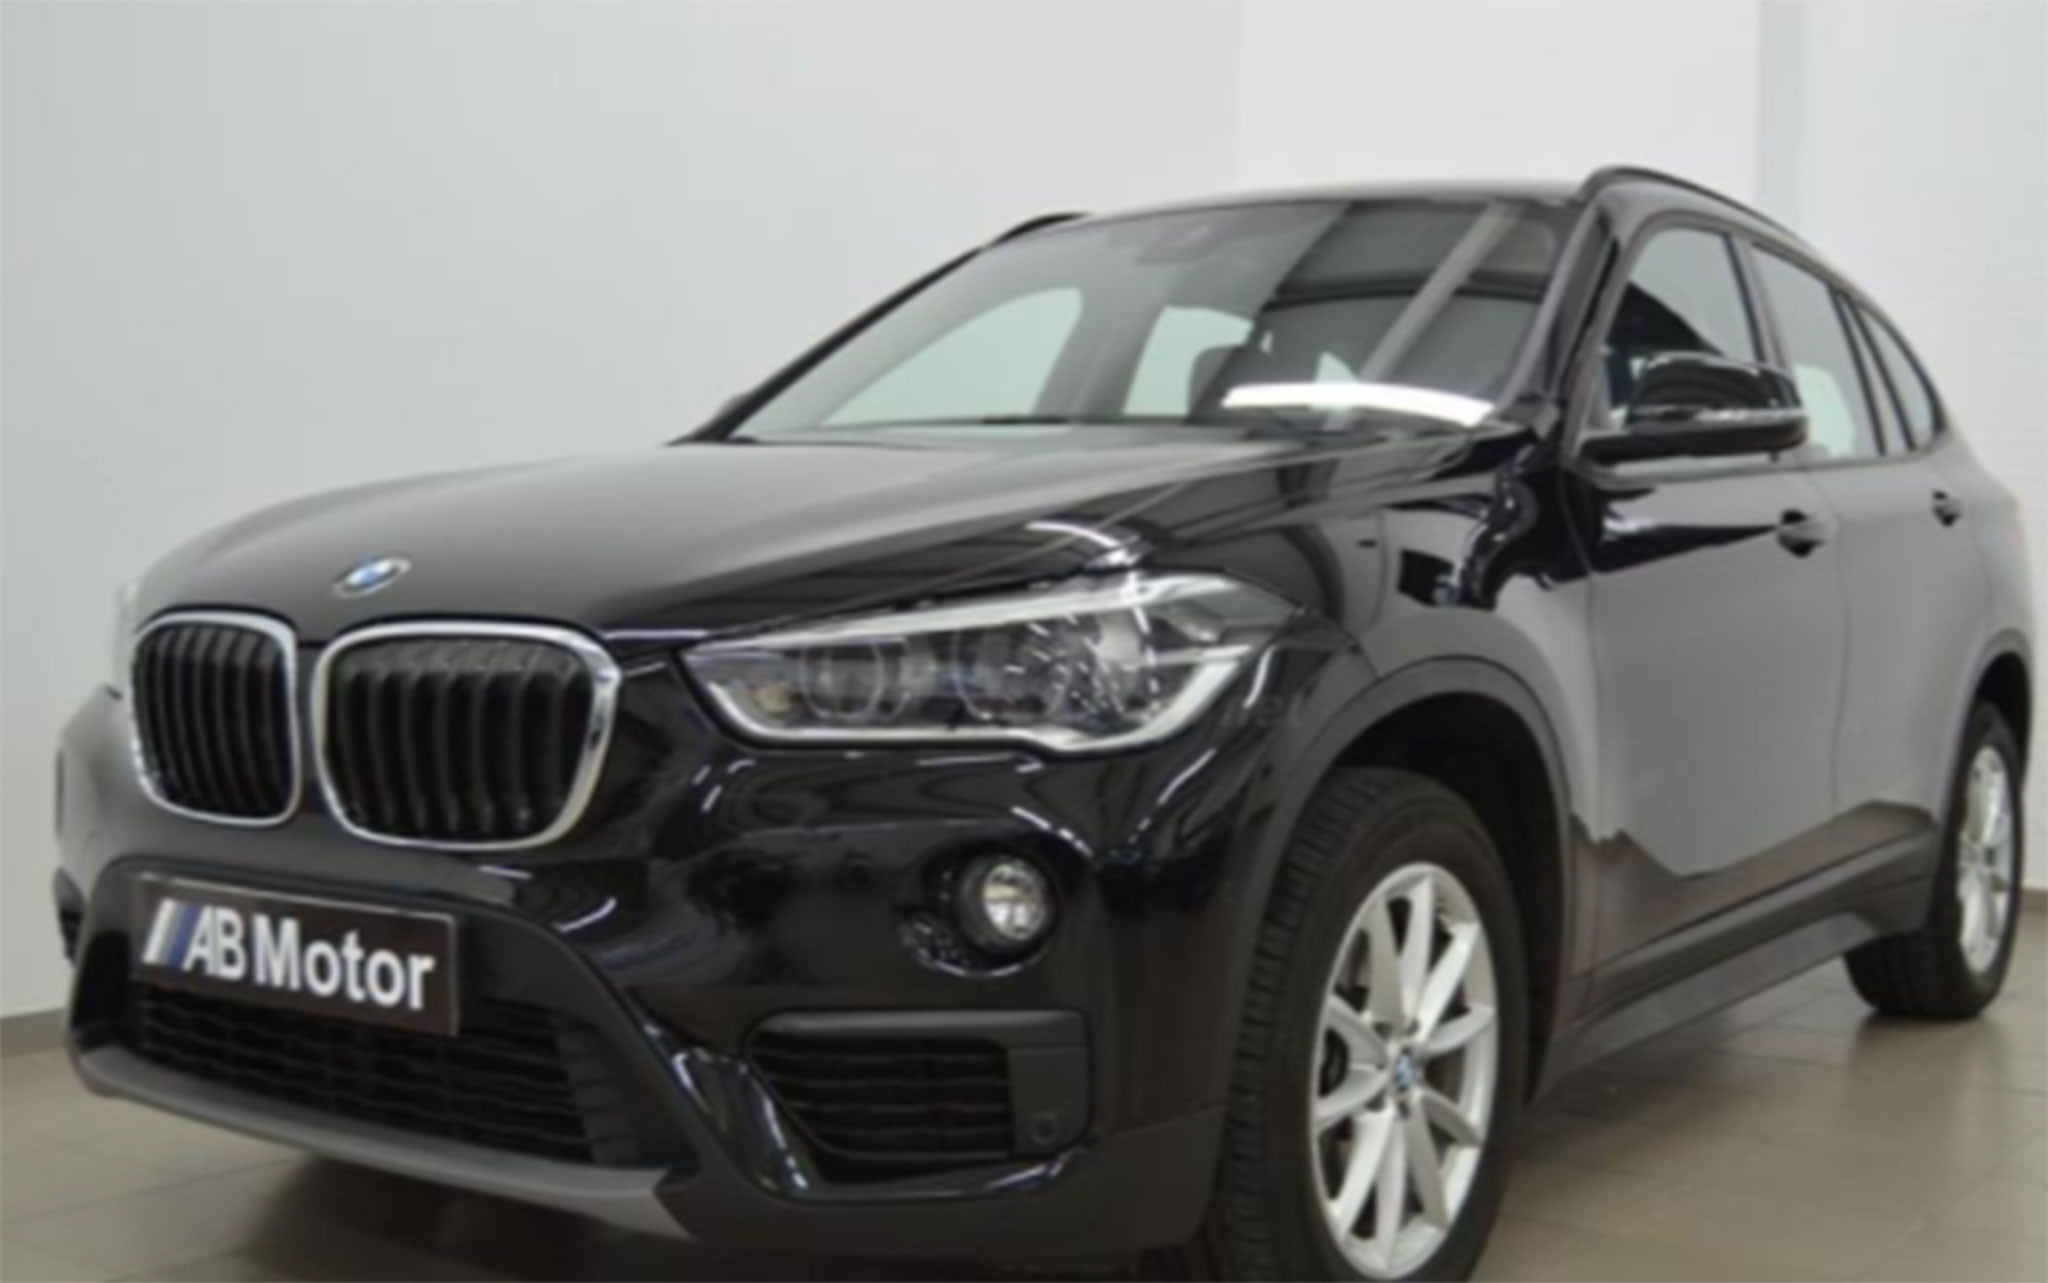 BMW X1 sDrive18dA 5p.-AB Engine